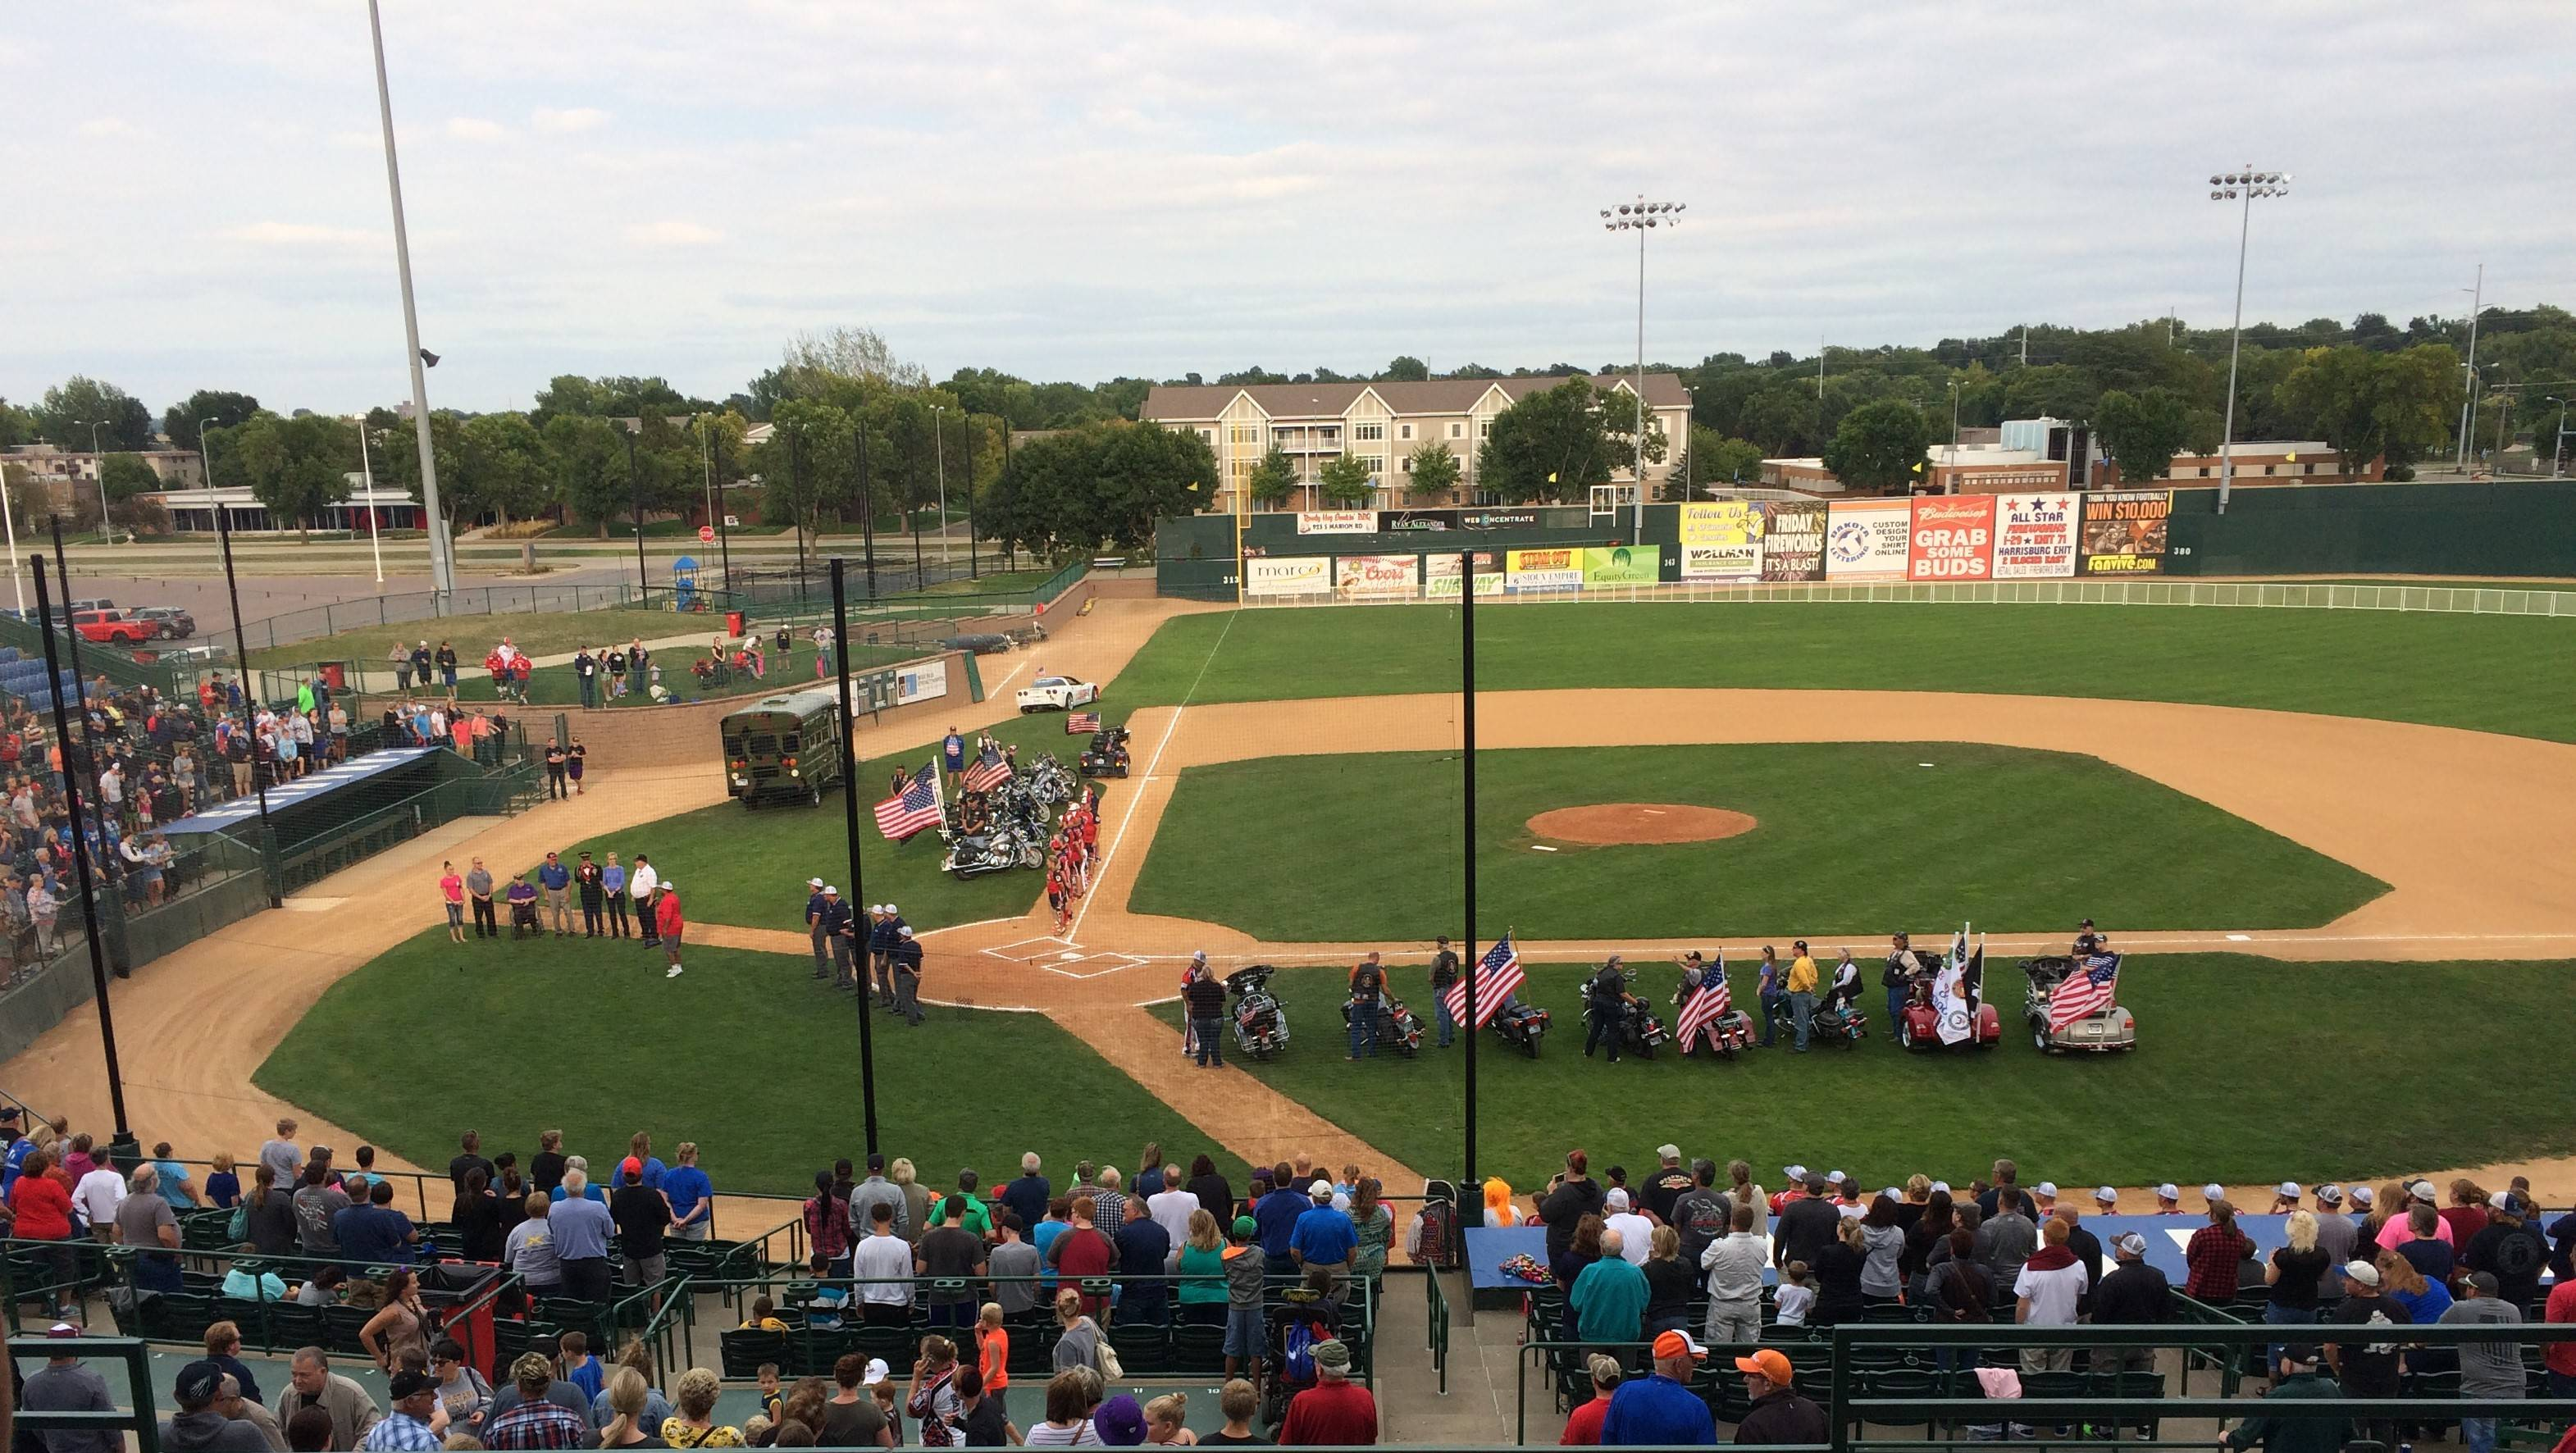 photo of baseball field with veterans